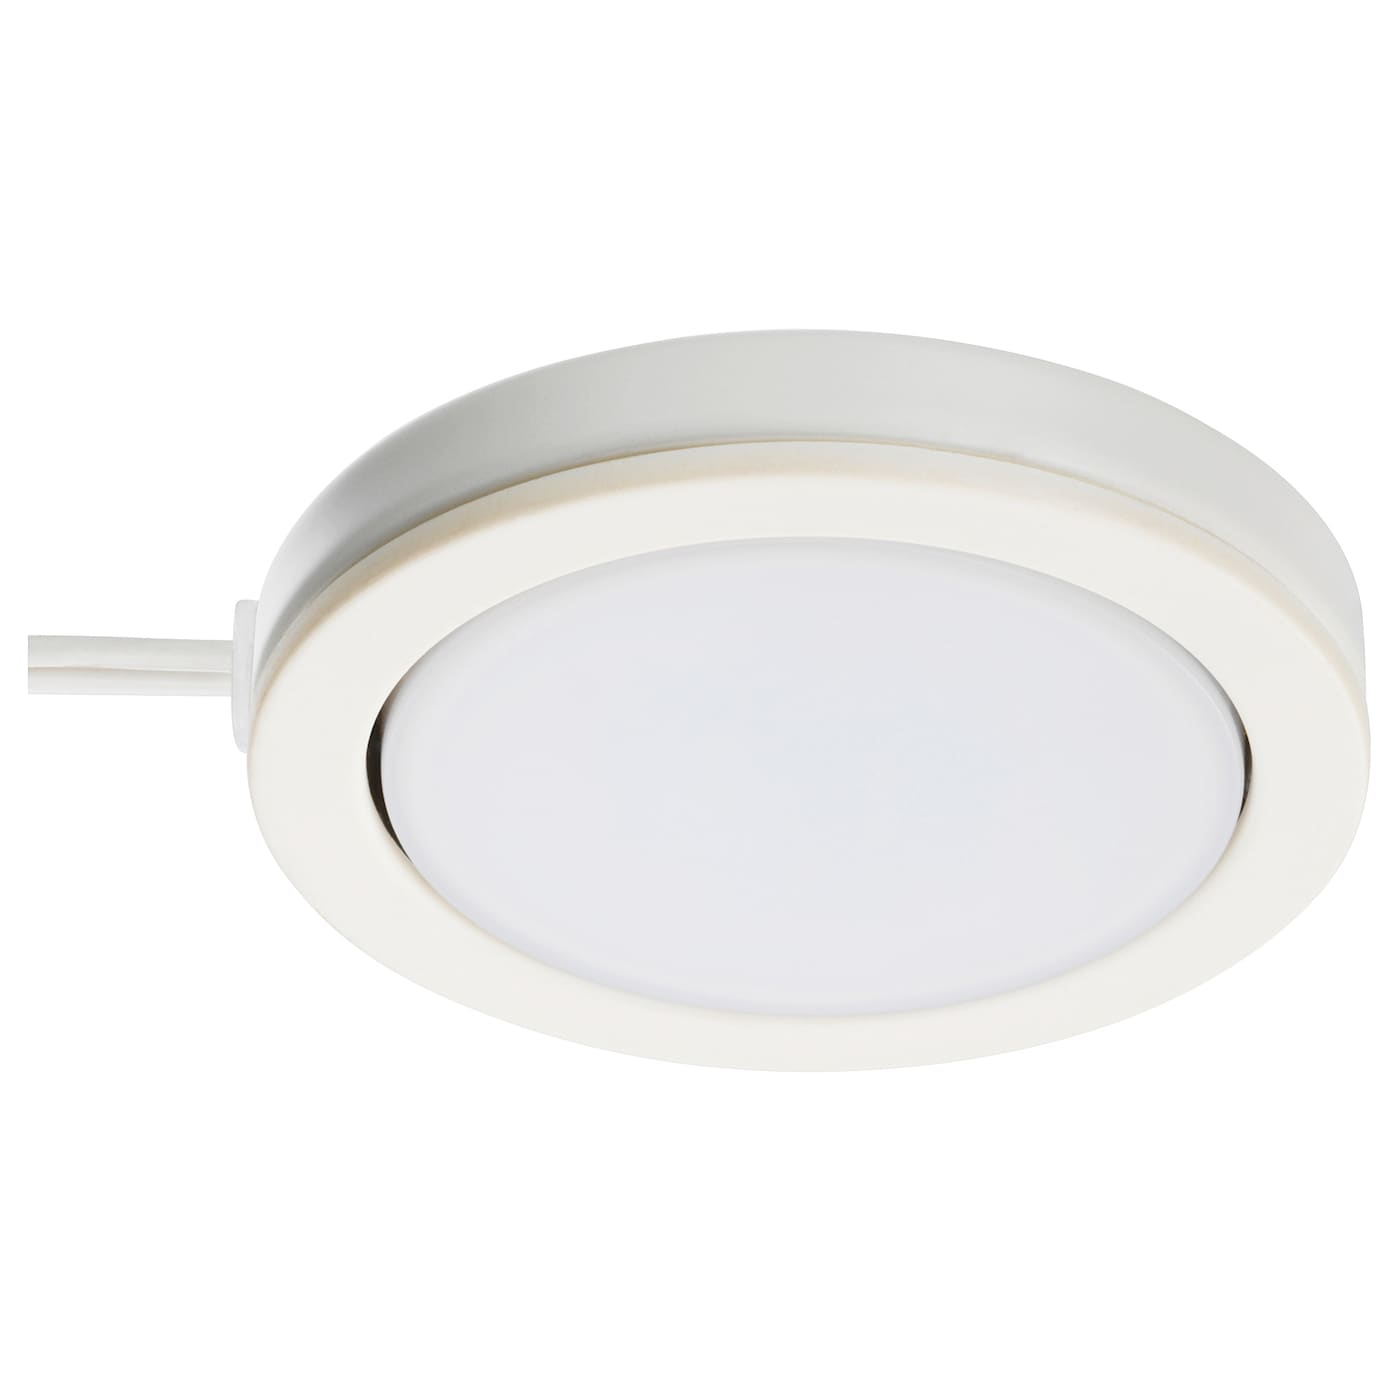 Led Strip Lights Integrated Lighting Ikea Wiring A Kitchen Light Fitting Omlopp Spotlight Adds Decorative Finish To Your